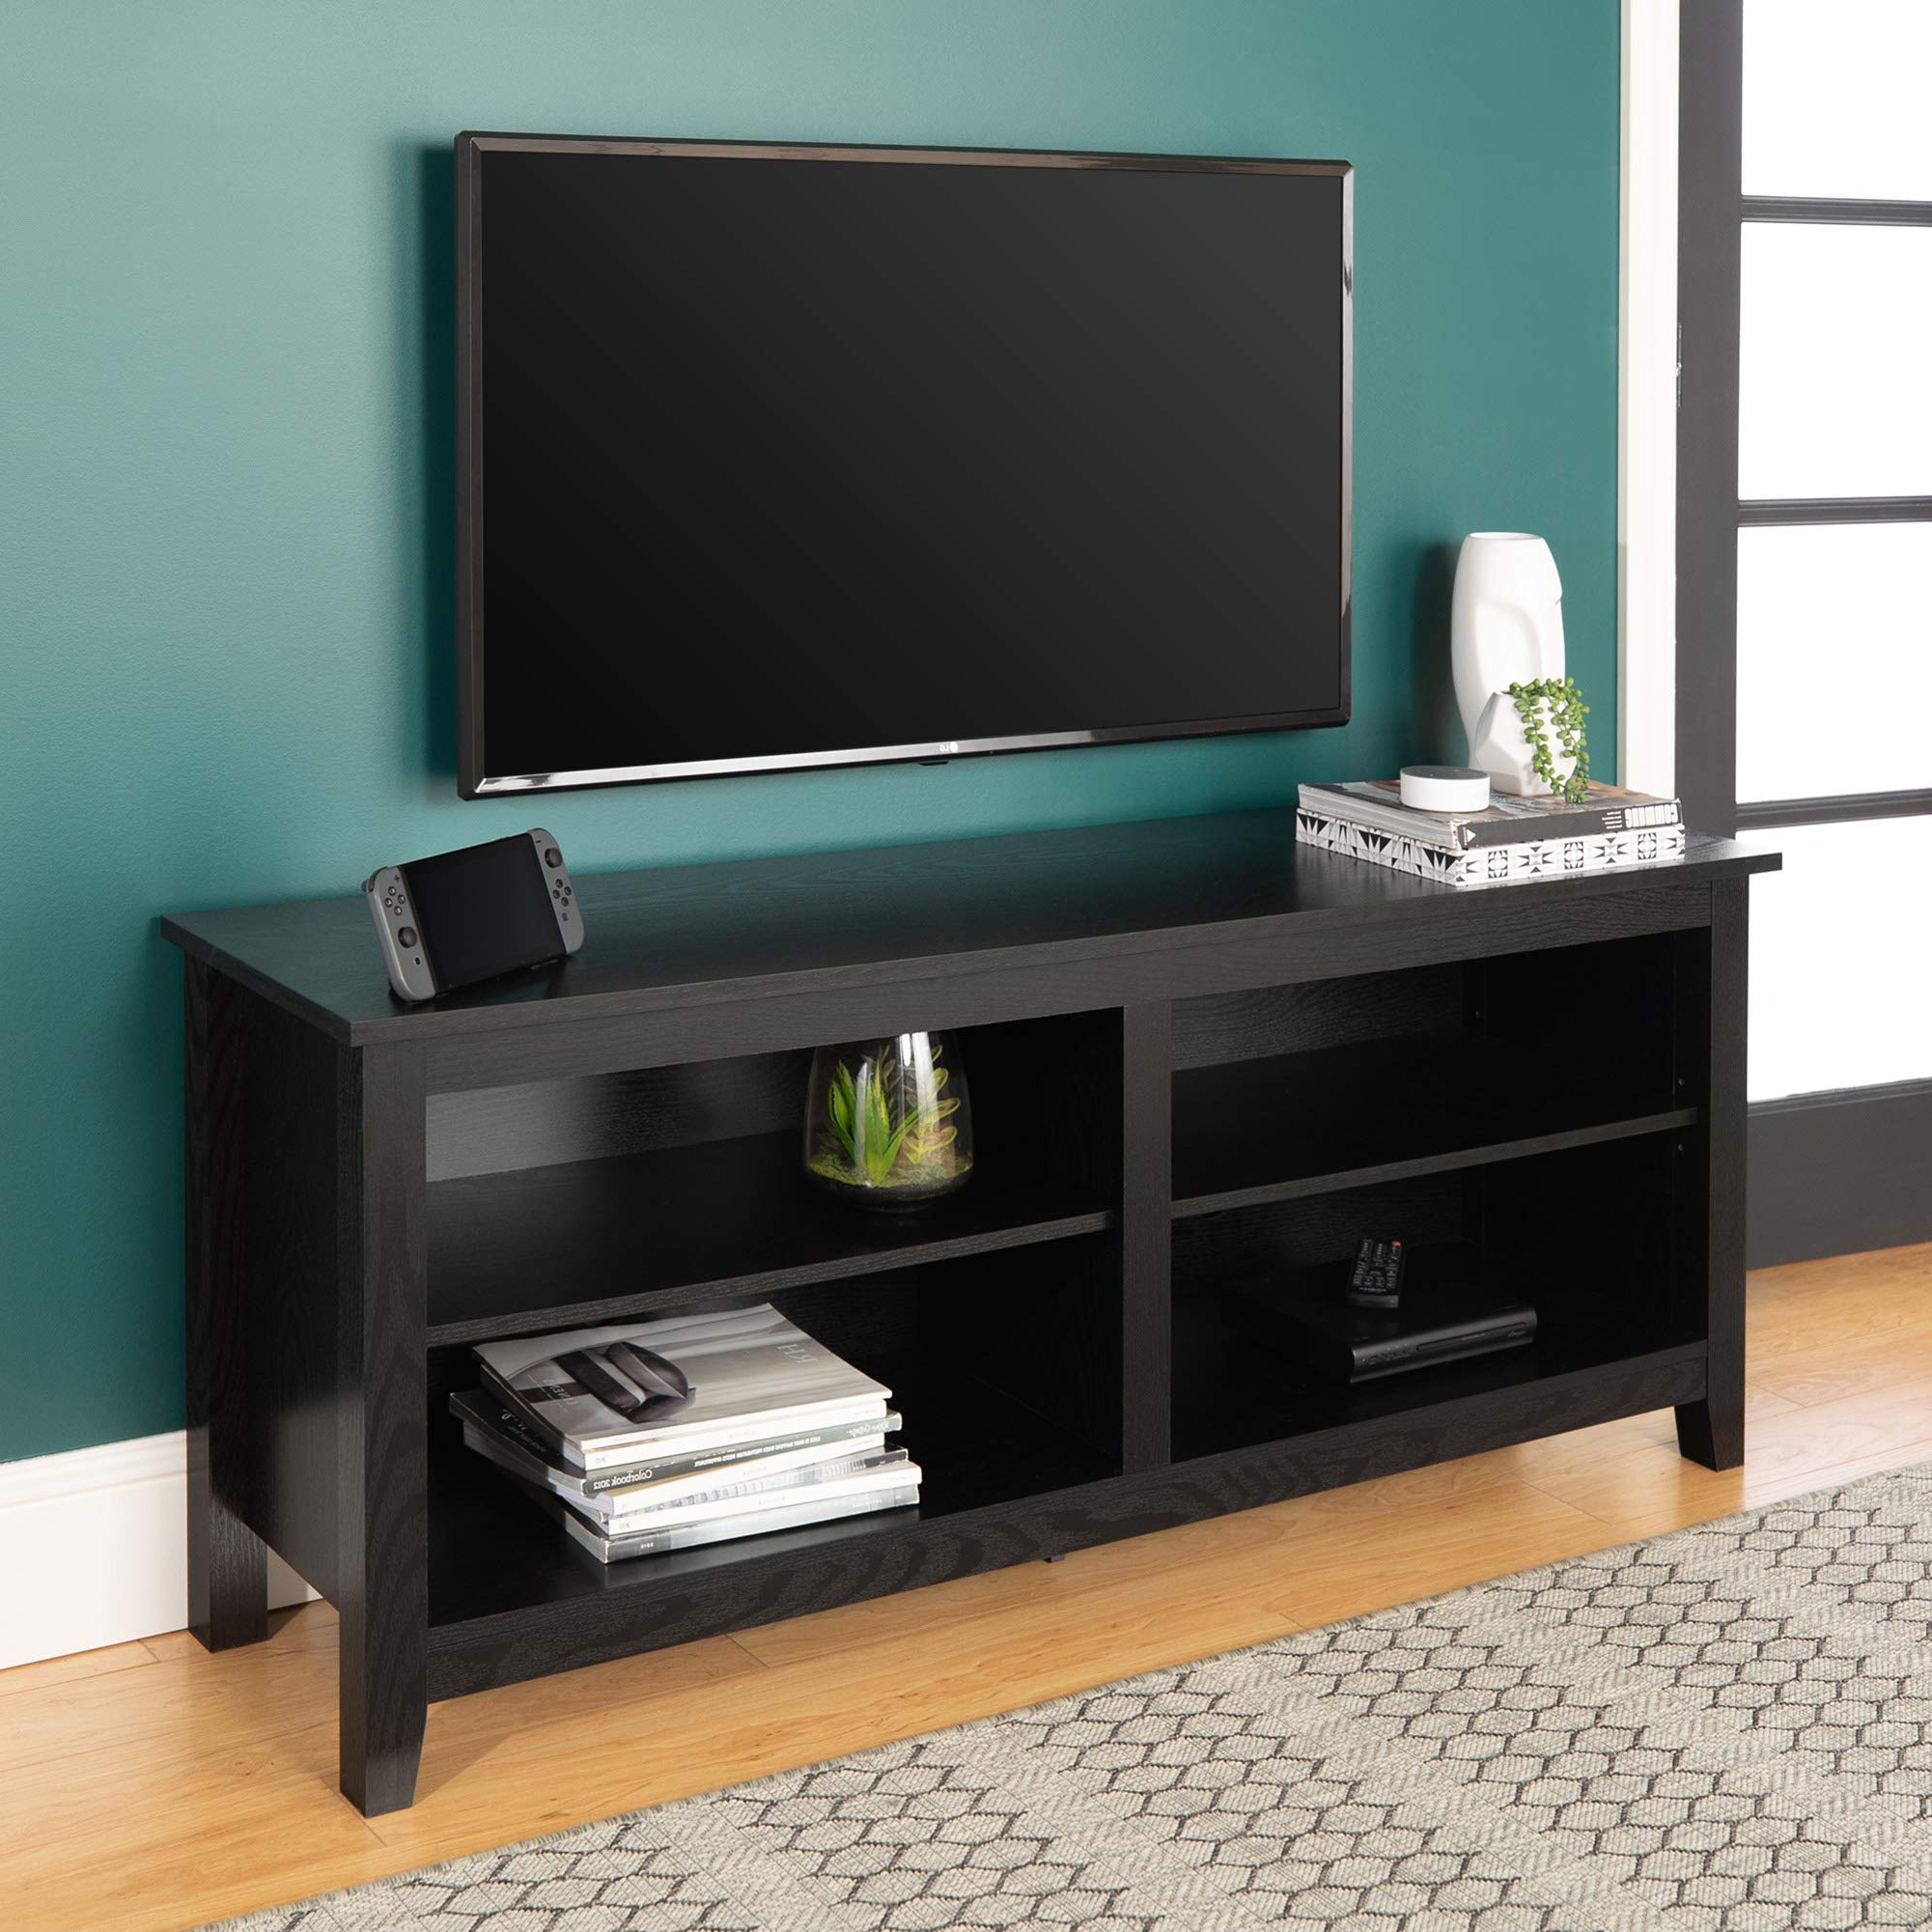 Most Recently Released Panama Tv Stands Inside Walker Edison Wren Classic 4 Cubby Tv Stand For Tvs Up To (View 15 of 25)